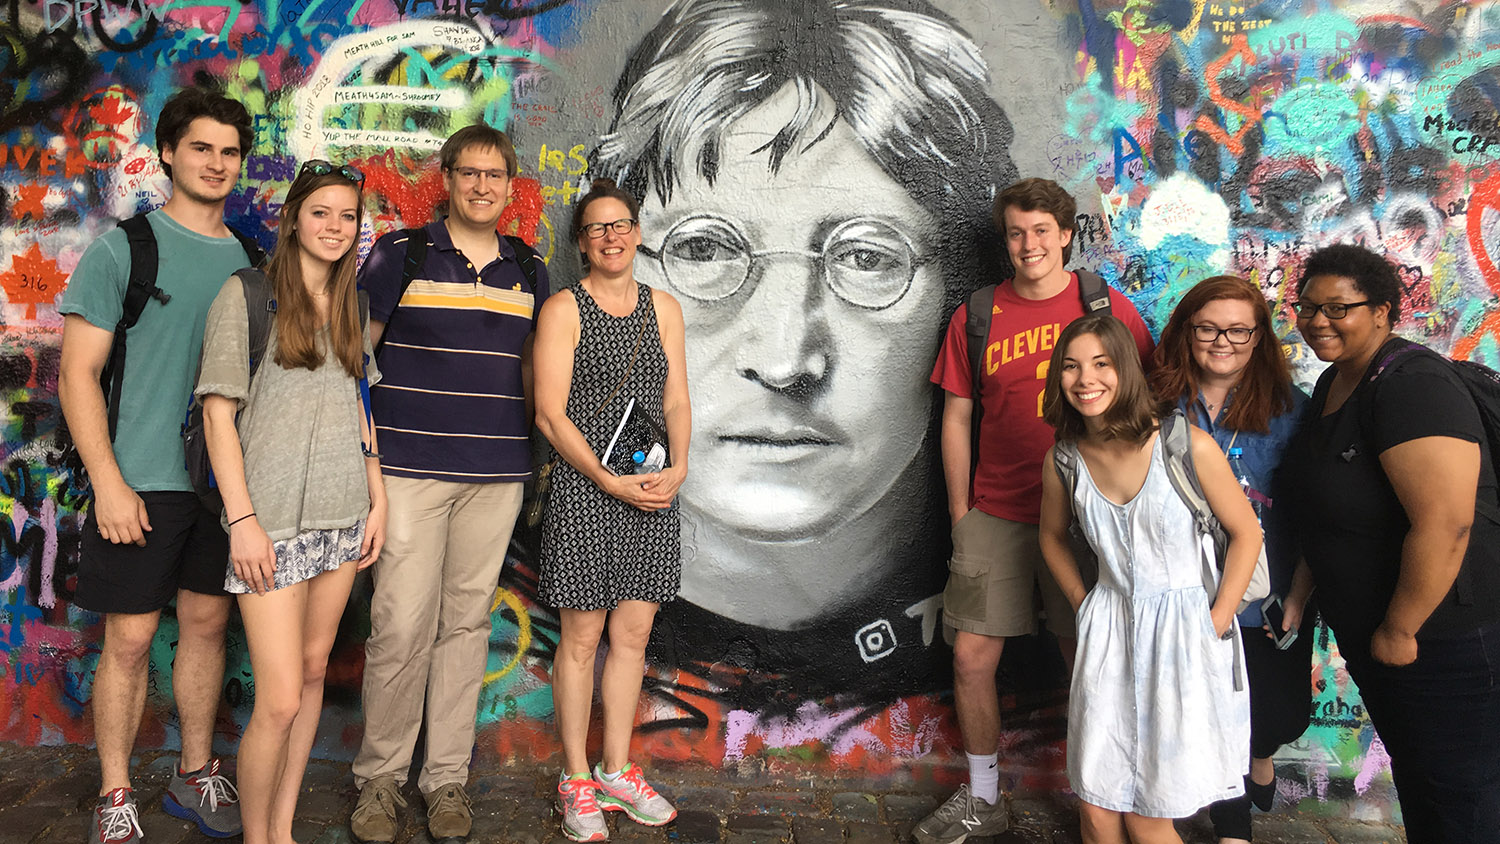 Students pose next to a mural of John Lennon while studying abroad in Prague